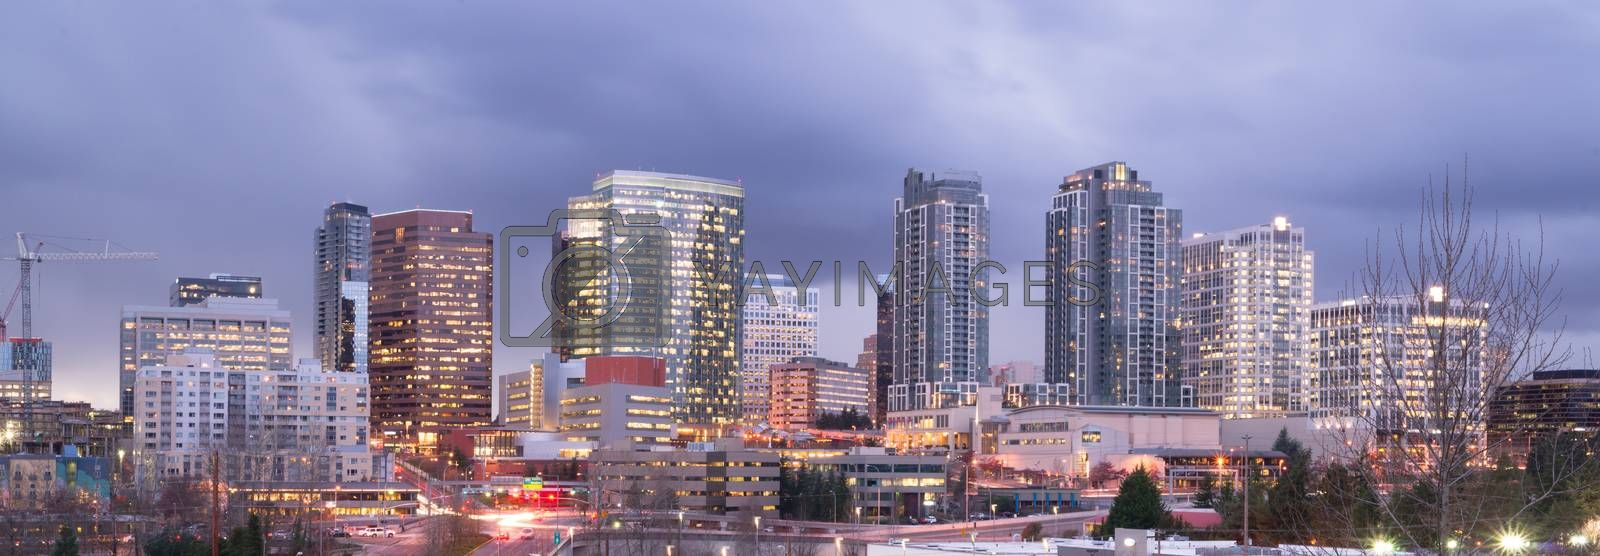 Royalty free image of Bright Lights City Skyline Downtown Bellevue Washington United S by ChrisBoswell